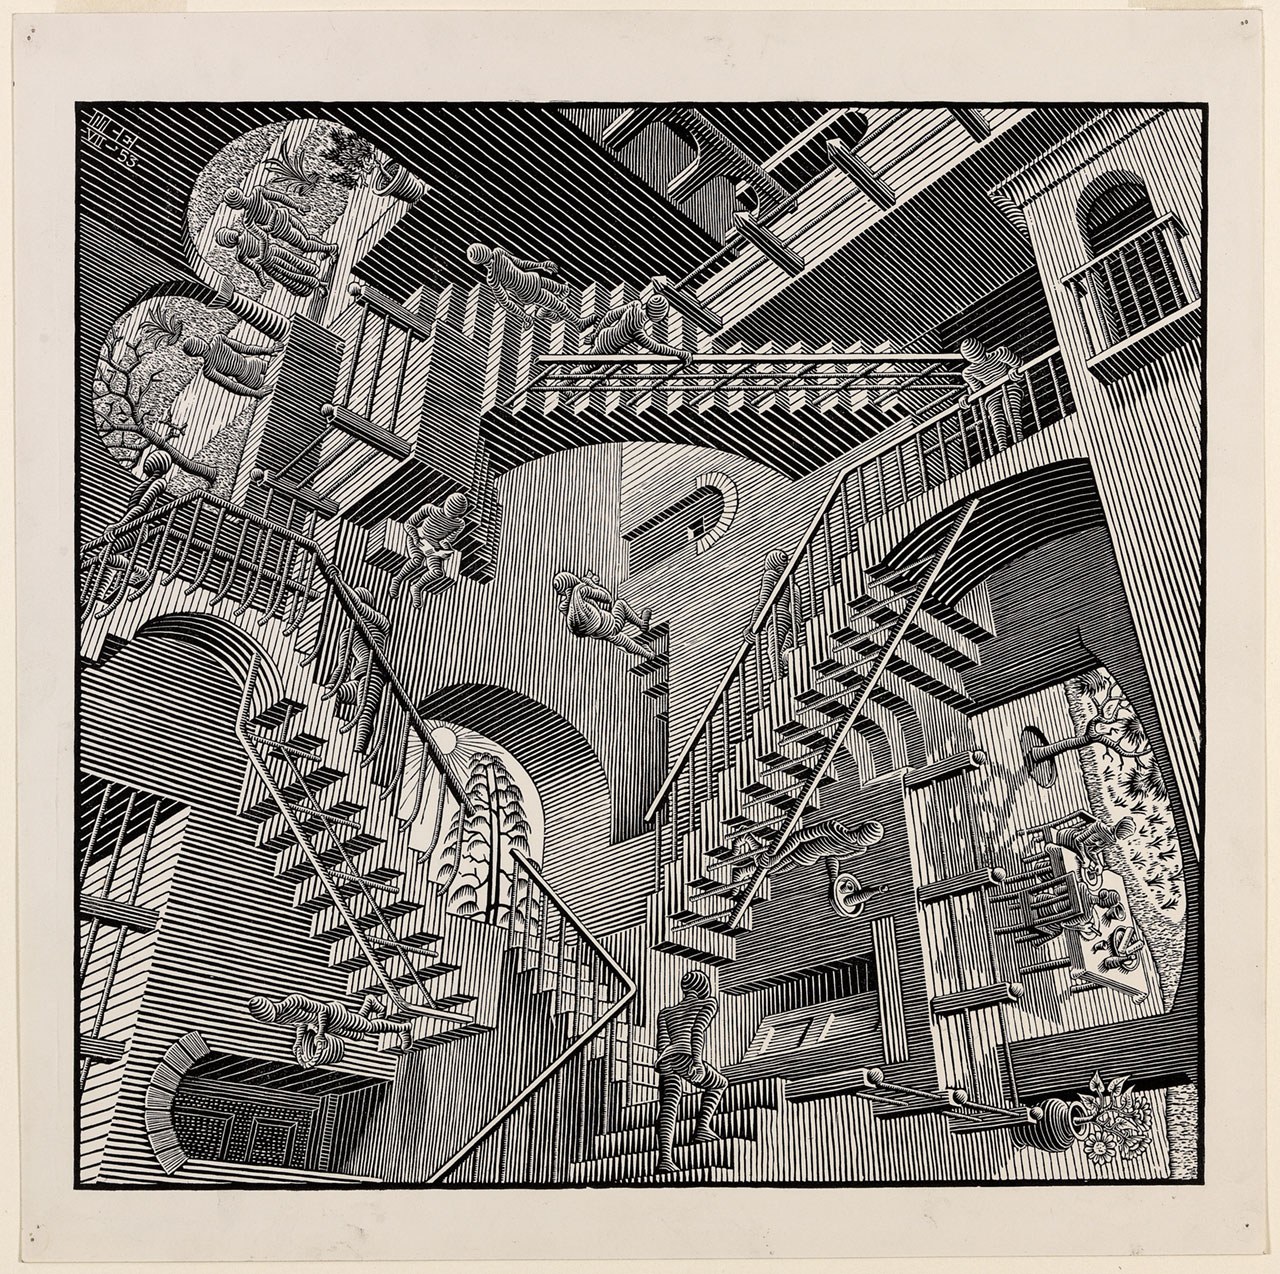 M. C. Escher, Relativity, July 1953, wood engraving. Escher Collection, Gemeentemuseum Den Haag, The Hague, the Netherlands © The M. C. Escher Company, the Netherlands. All rights reserved.